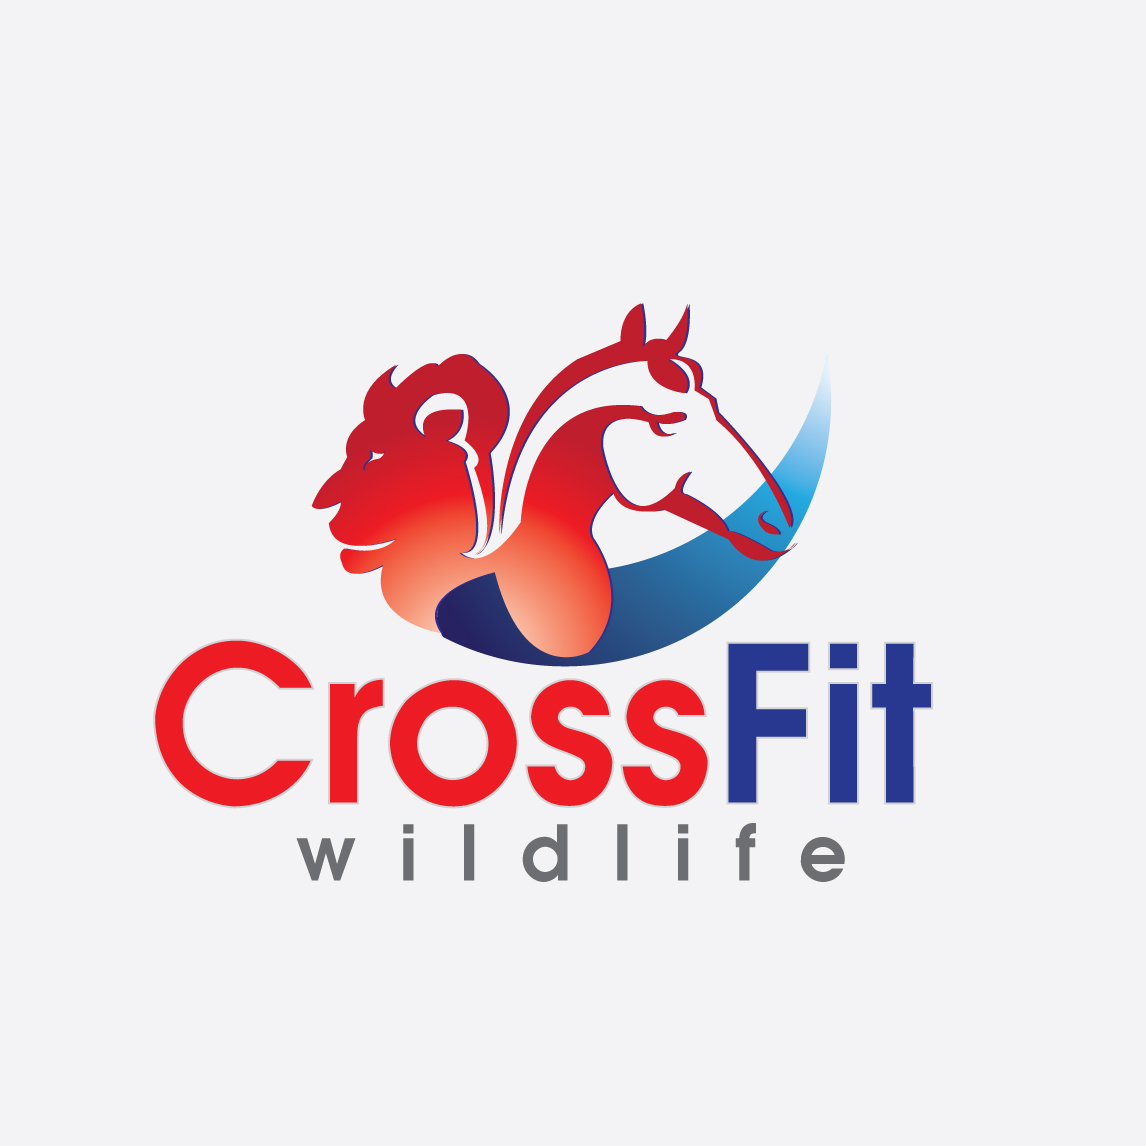 Crossfit Logos Designs Cake Ideas and Designs